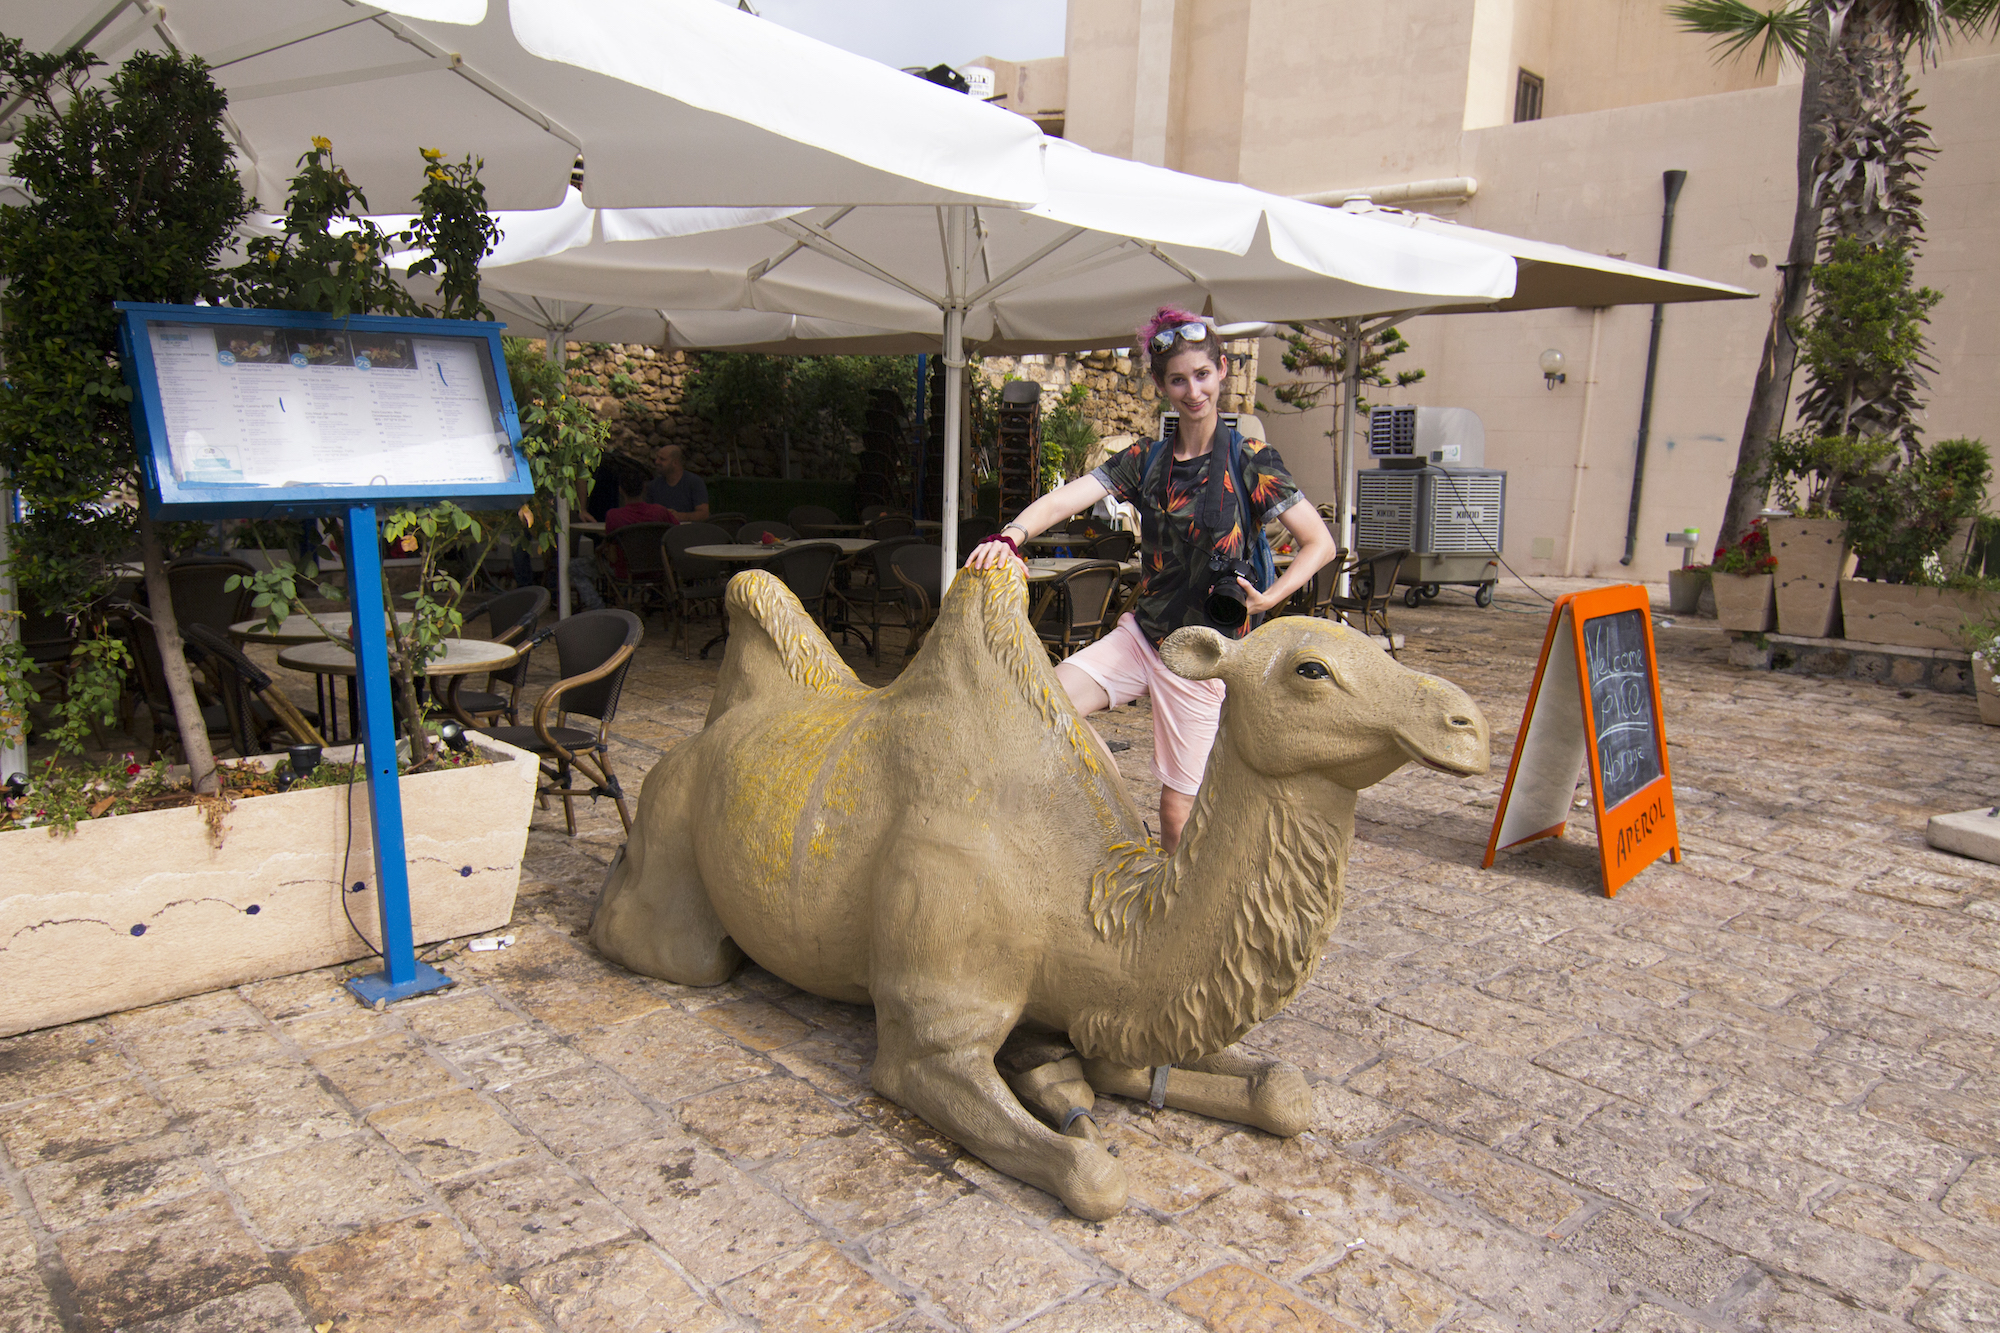 Captaining with a camel in Tel Aviv-Yafo. See more #travel photography @geenamatuson #thegirlmirage at thegirlmirage.com.